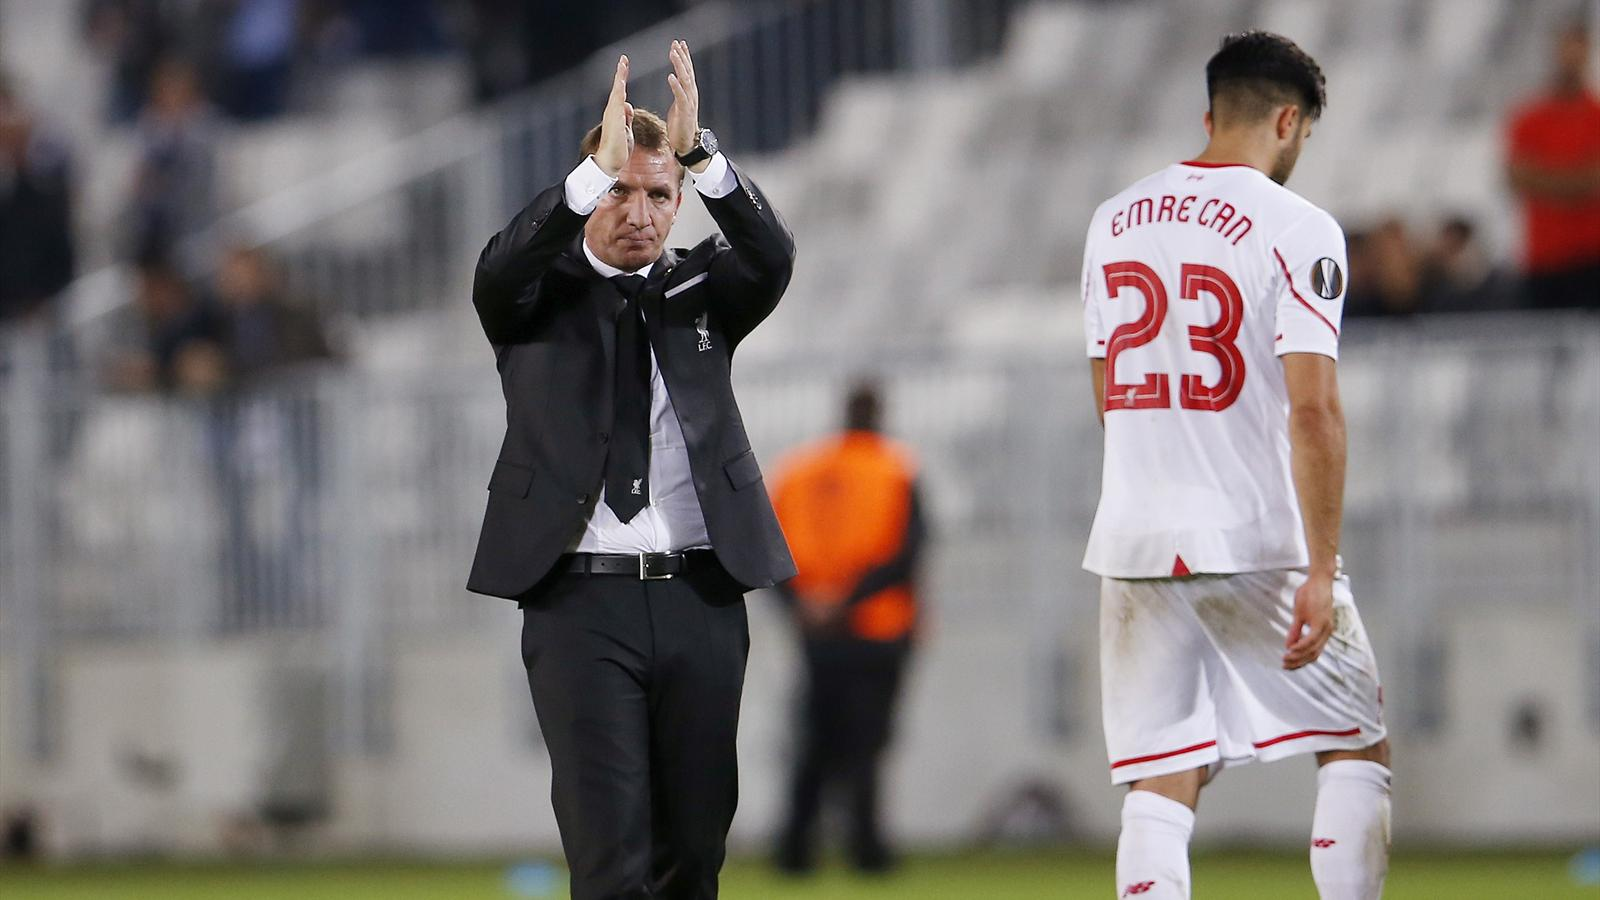 Liverpoool manager Brendan Rodgers applauds the fans at the end of the match with Bordeaux